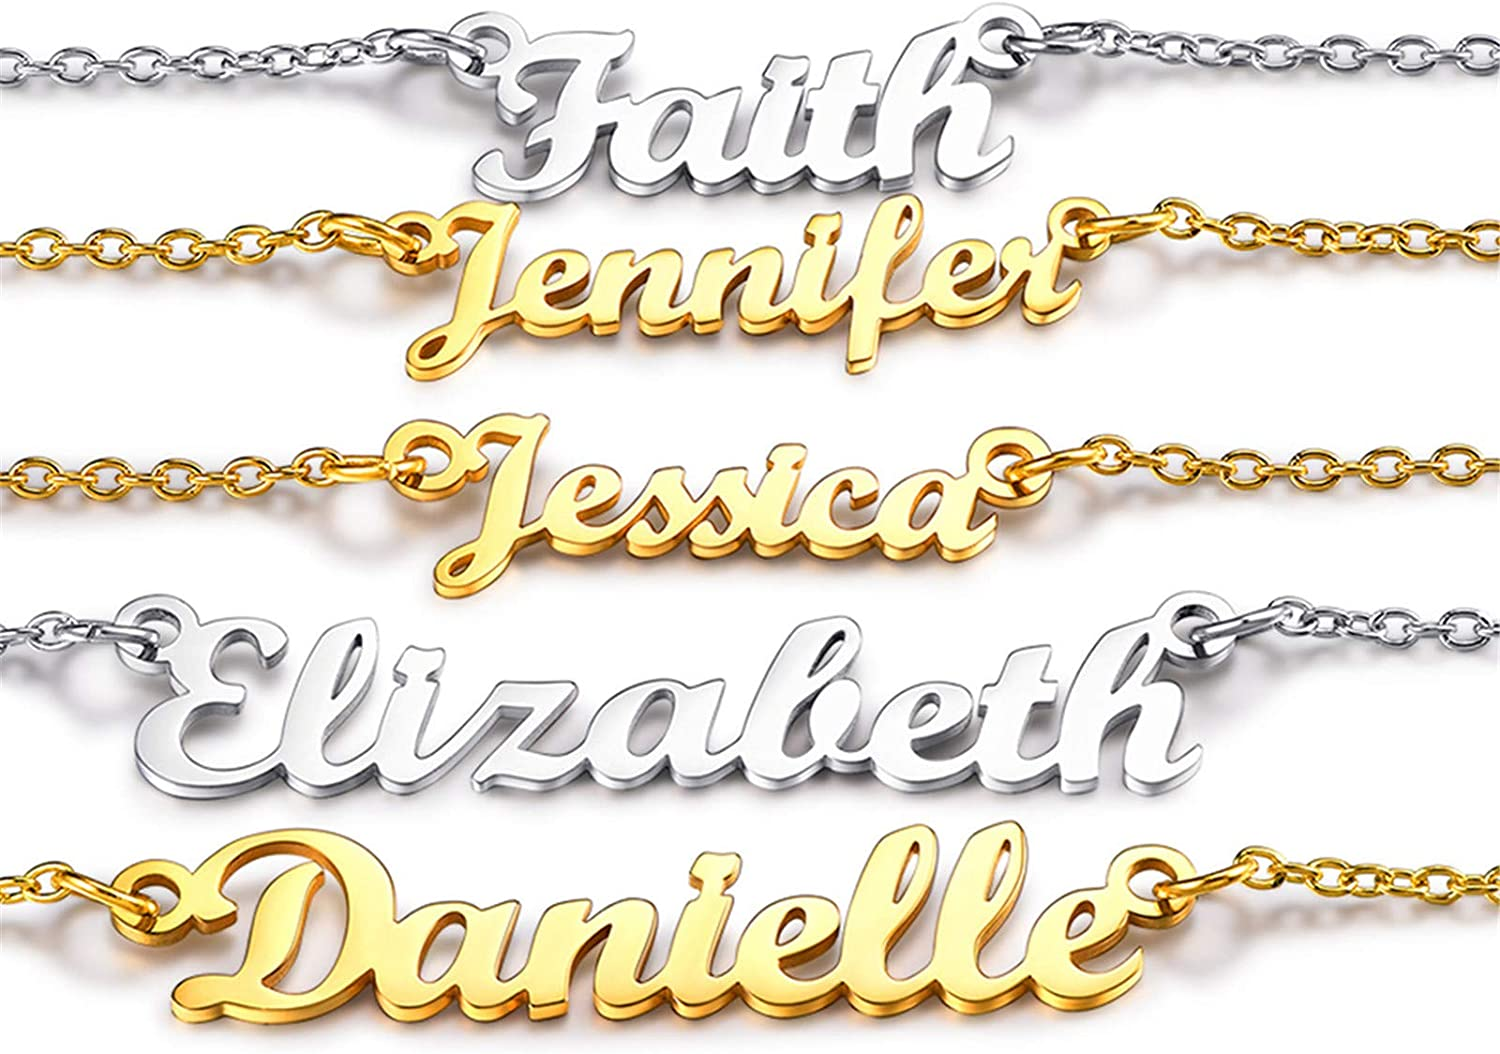 3 Name Necklace Women/'s Personalized Necklace 18K Gold Plated Any Name Necklace Vintage Style Necklace Gothic Necklace Old English Necklace